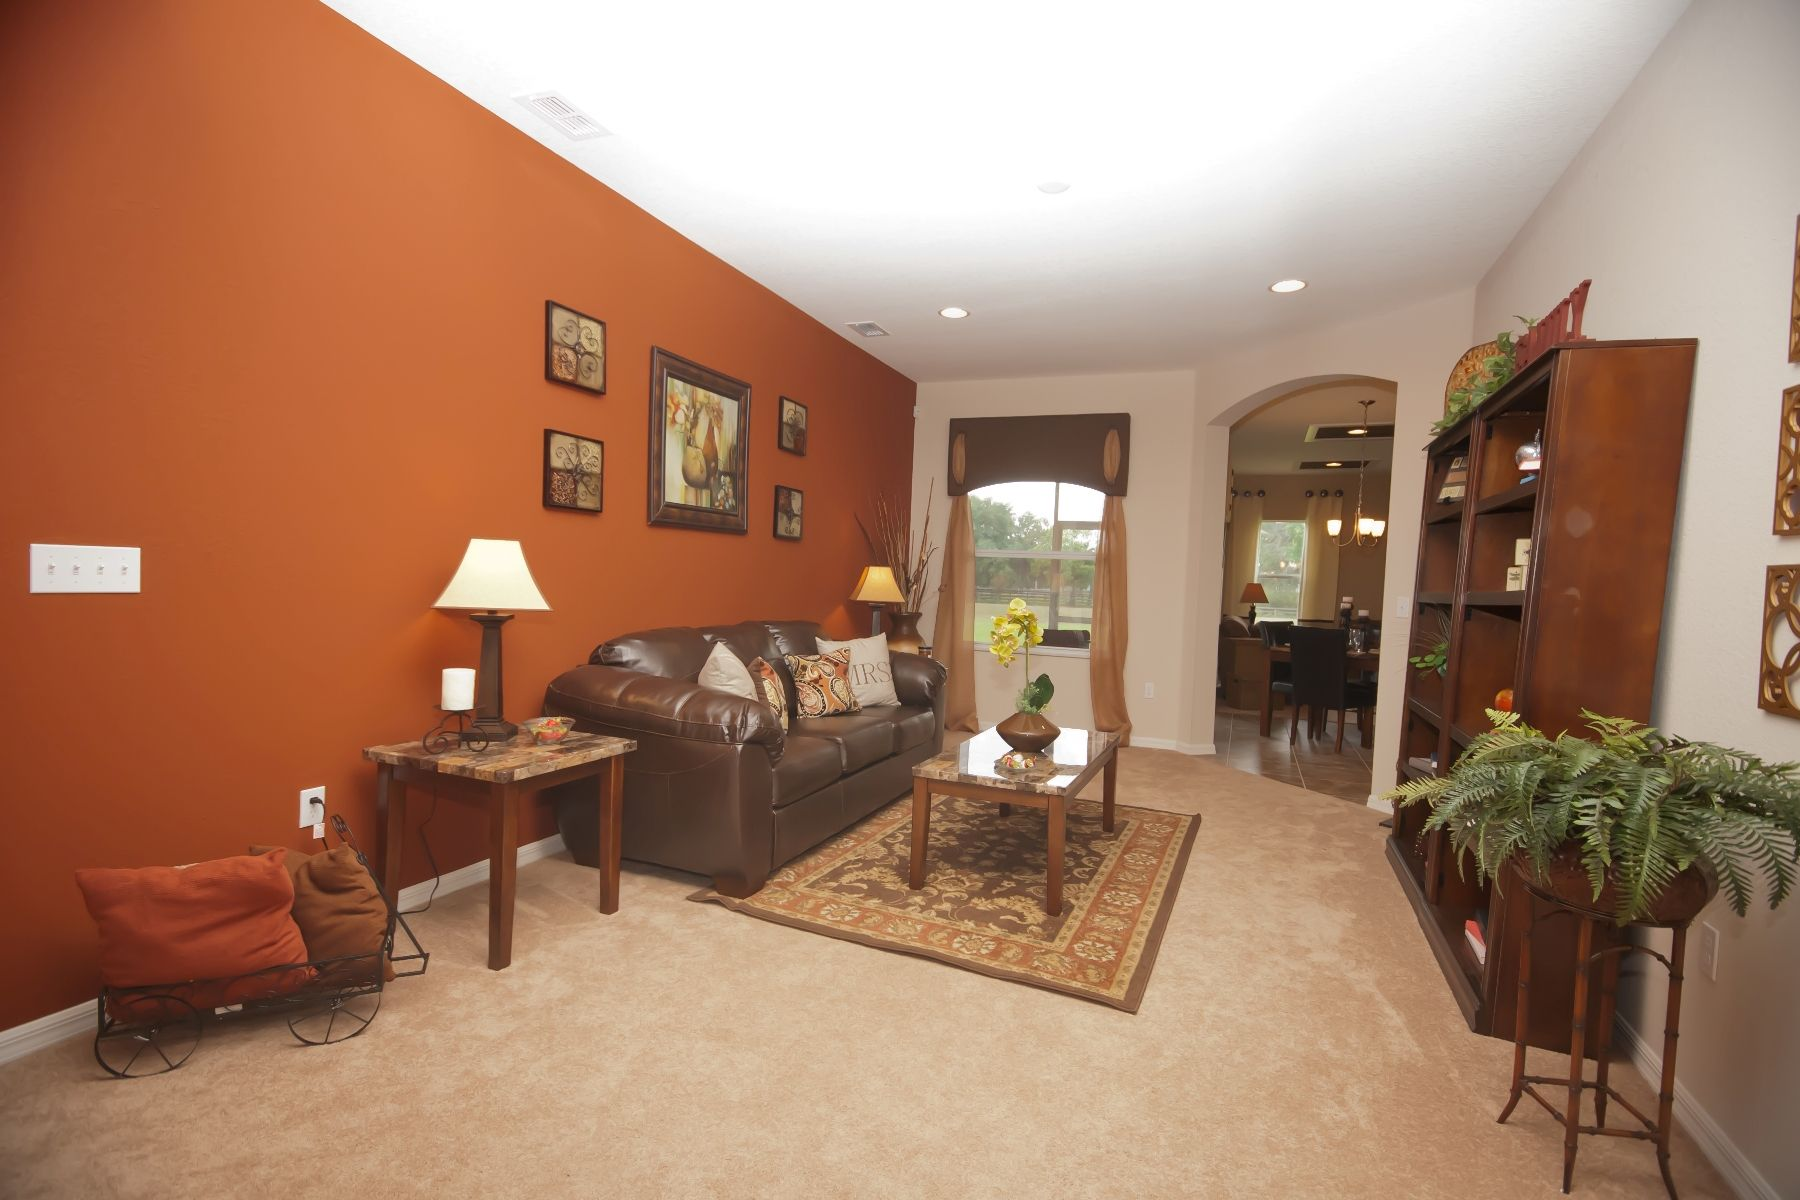 Burnt #orange Accent Wall Perfectly Pairs With The Neutral Furnishings And  Flooring. Highland Homesu0027 Williamson II Model Home In Plant City, FL.